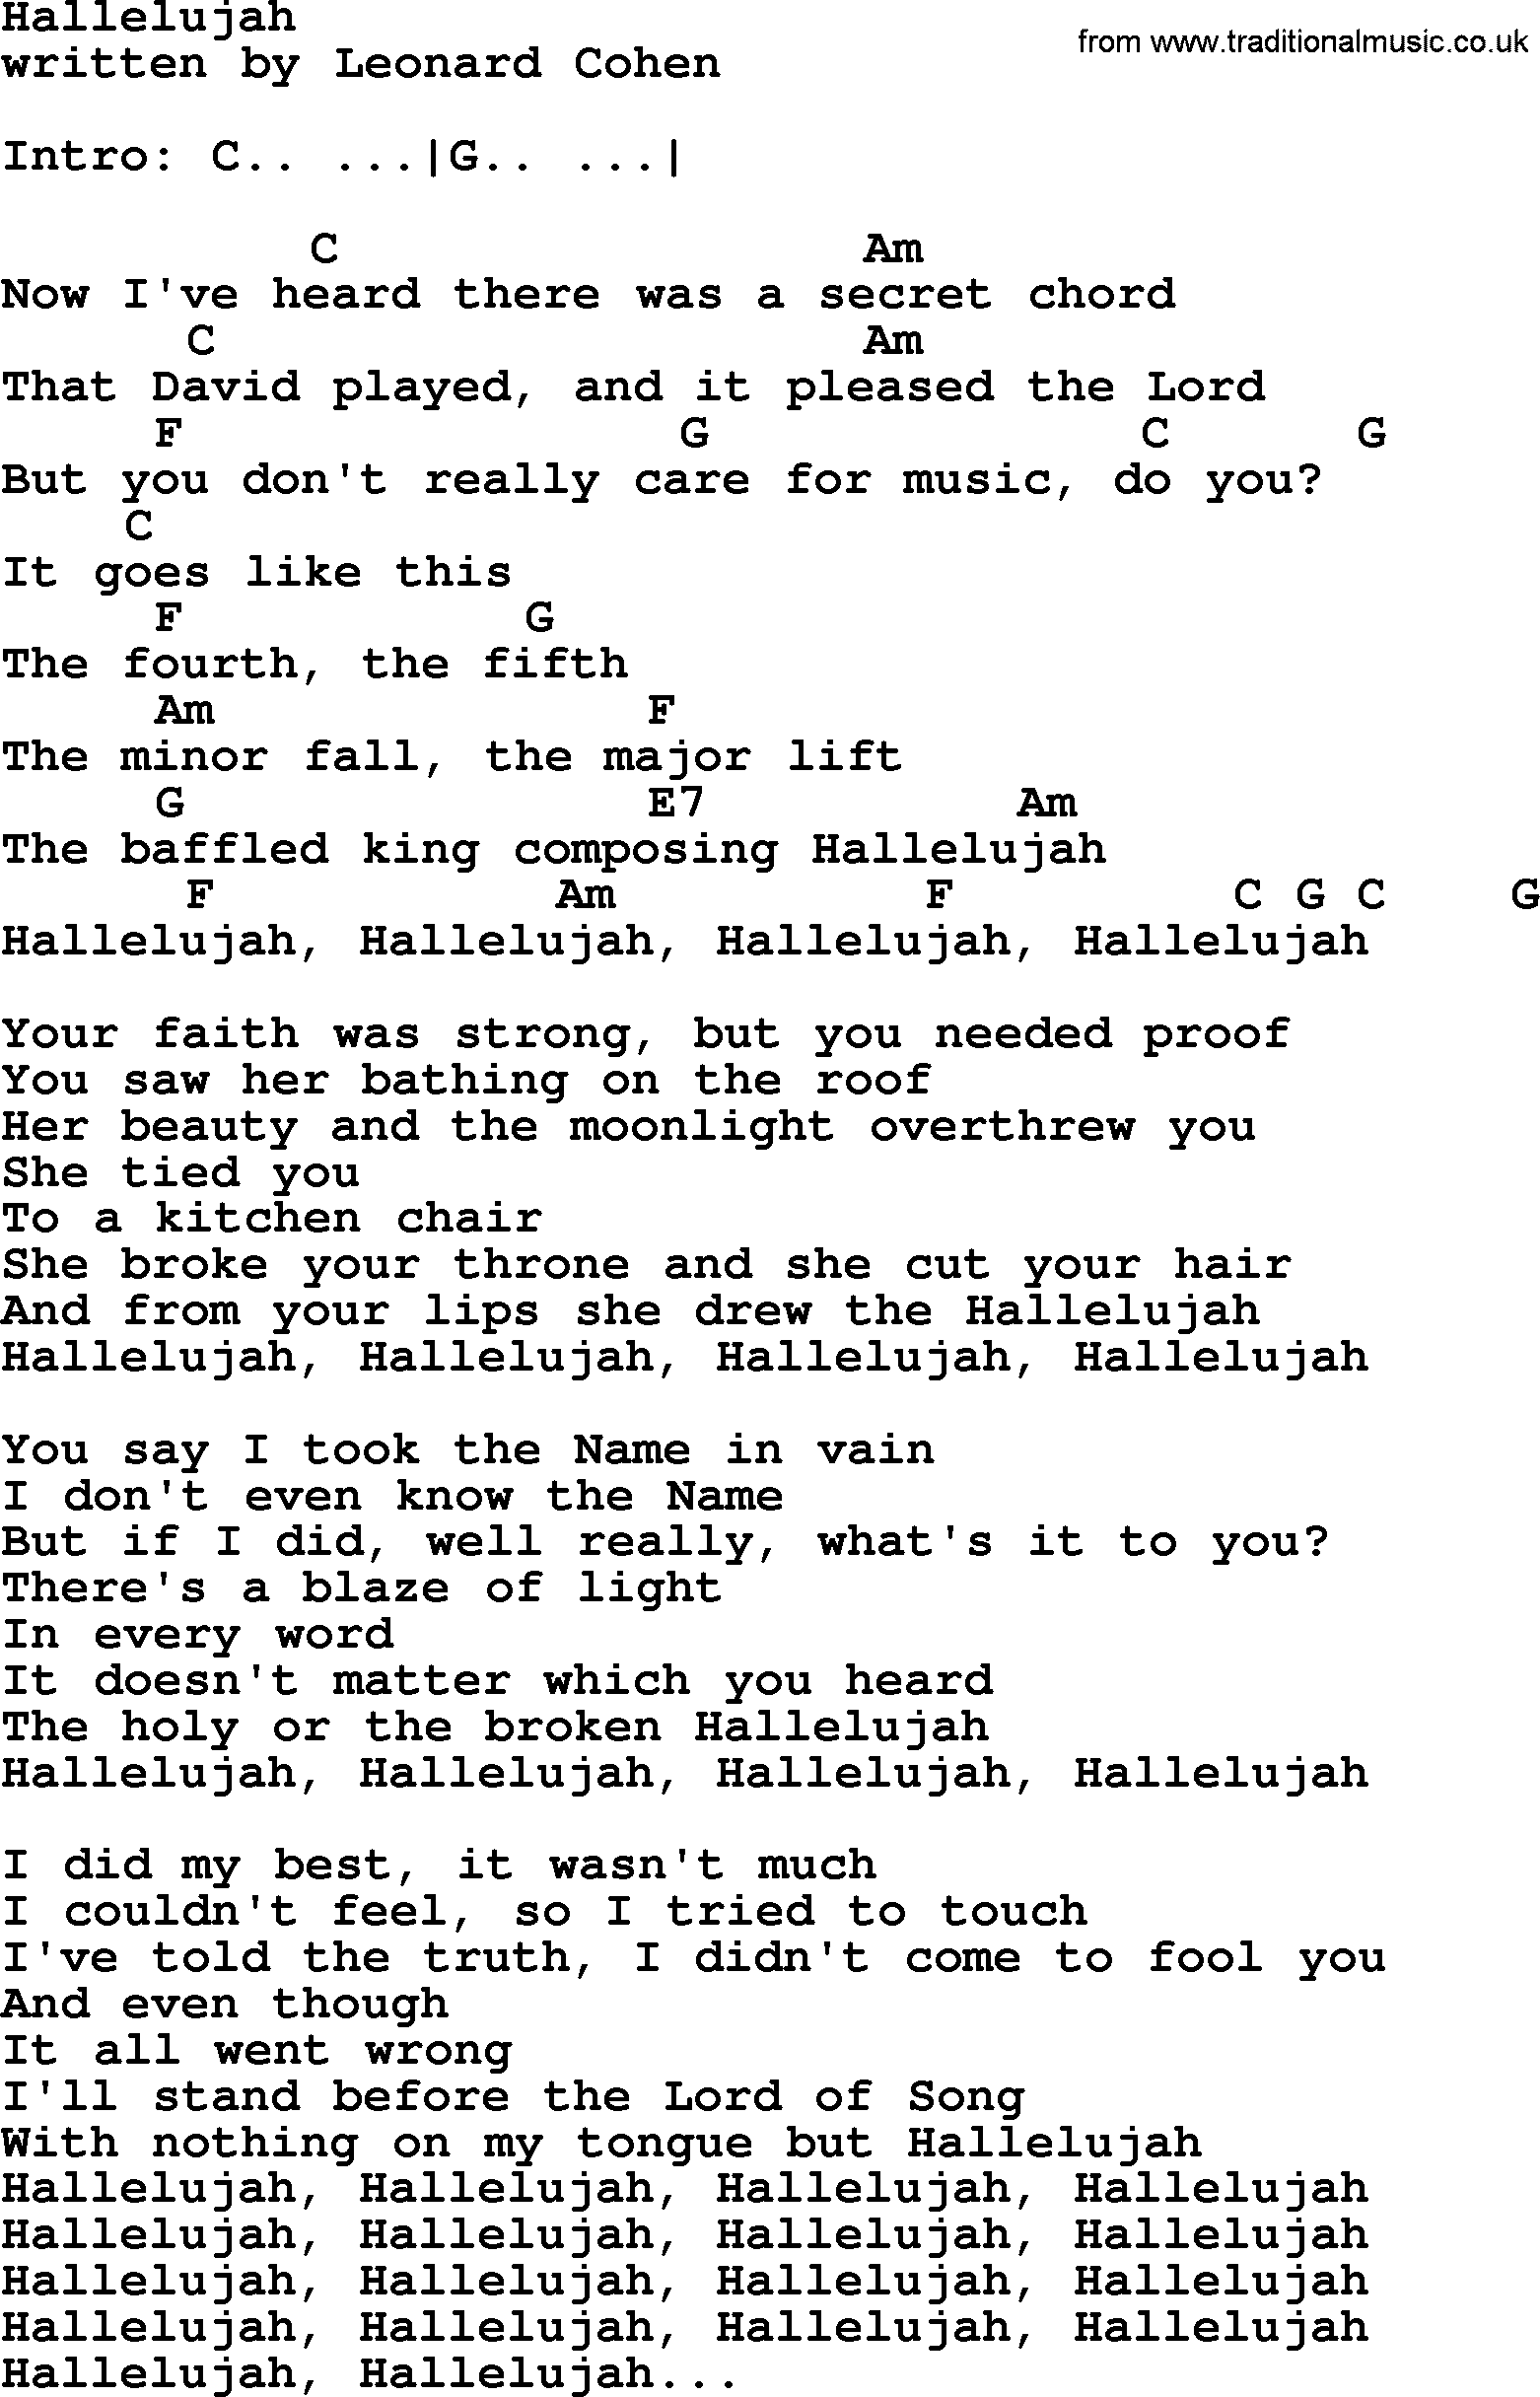 Leonard Cohen song: Hallelujah, lyrics and chords